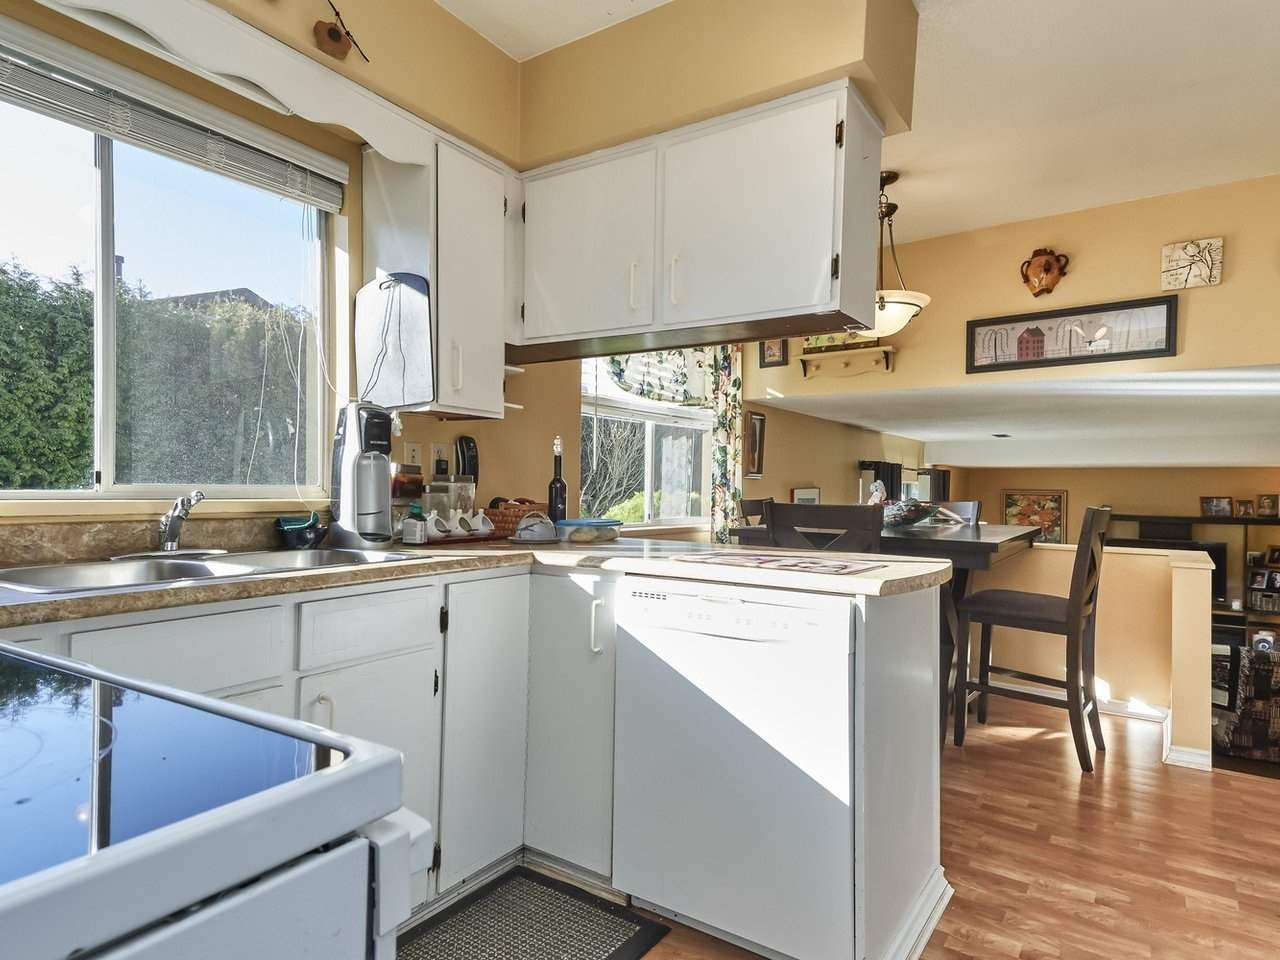 Photo 10: Photos: 4880 FORTUNE AVENUE in Richmond: Steveston North House for sale : MLS®# R2435063